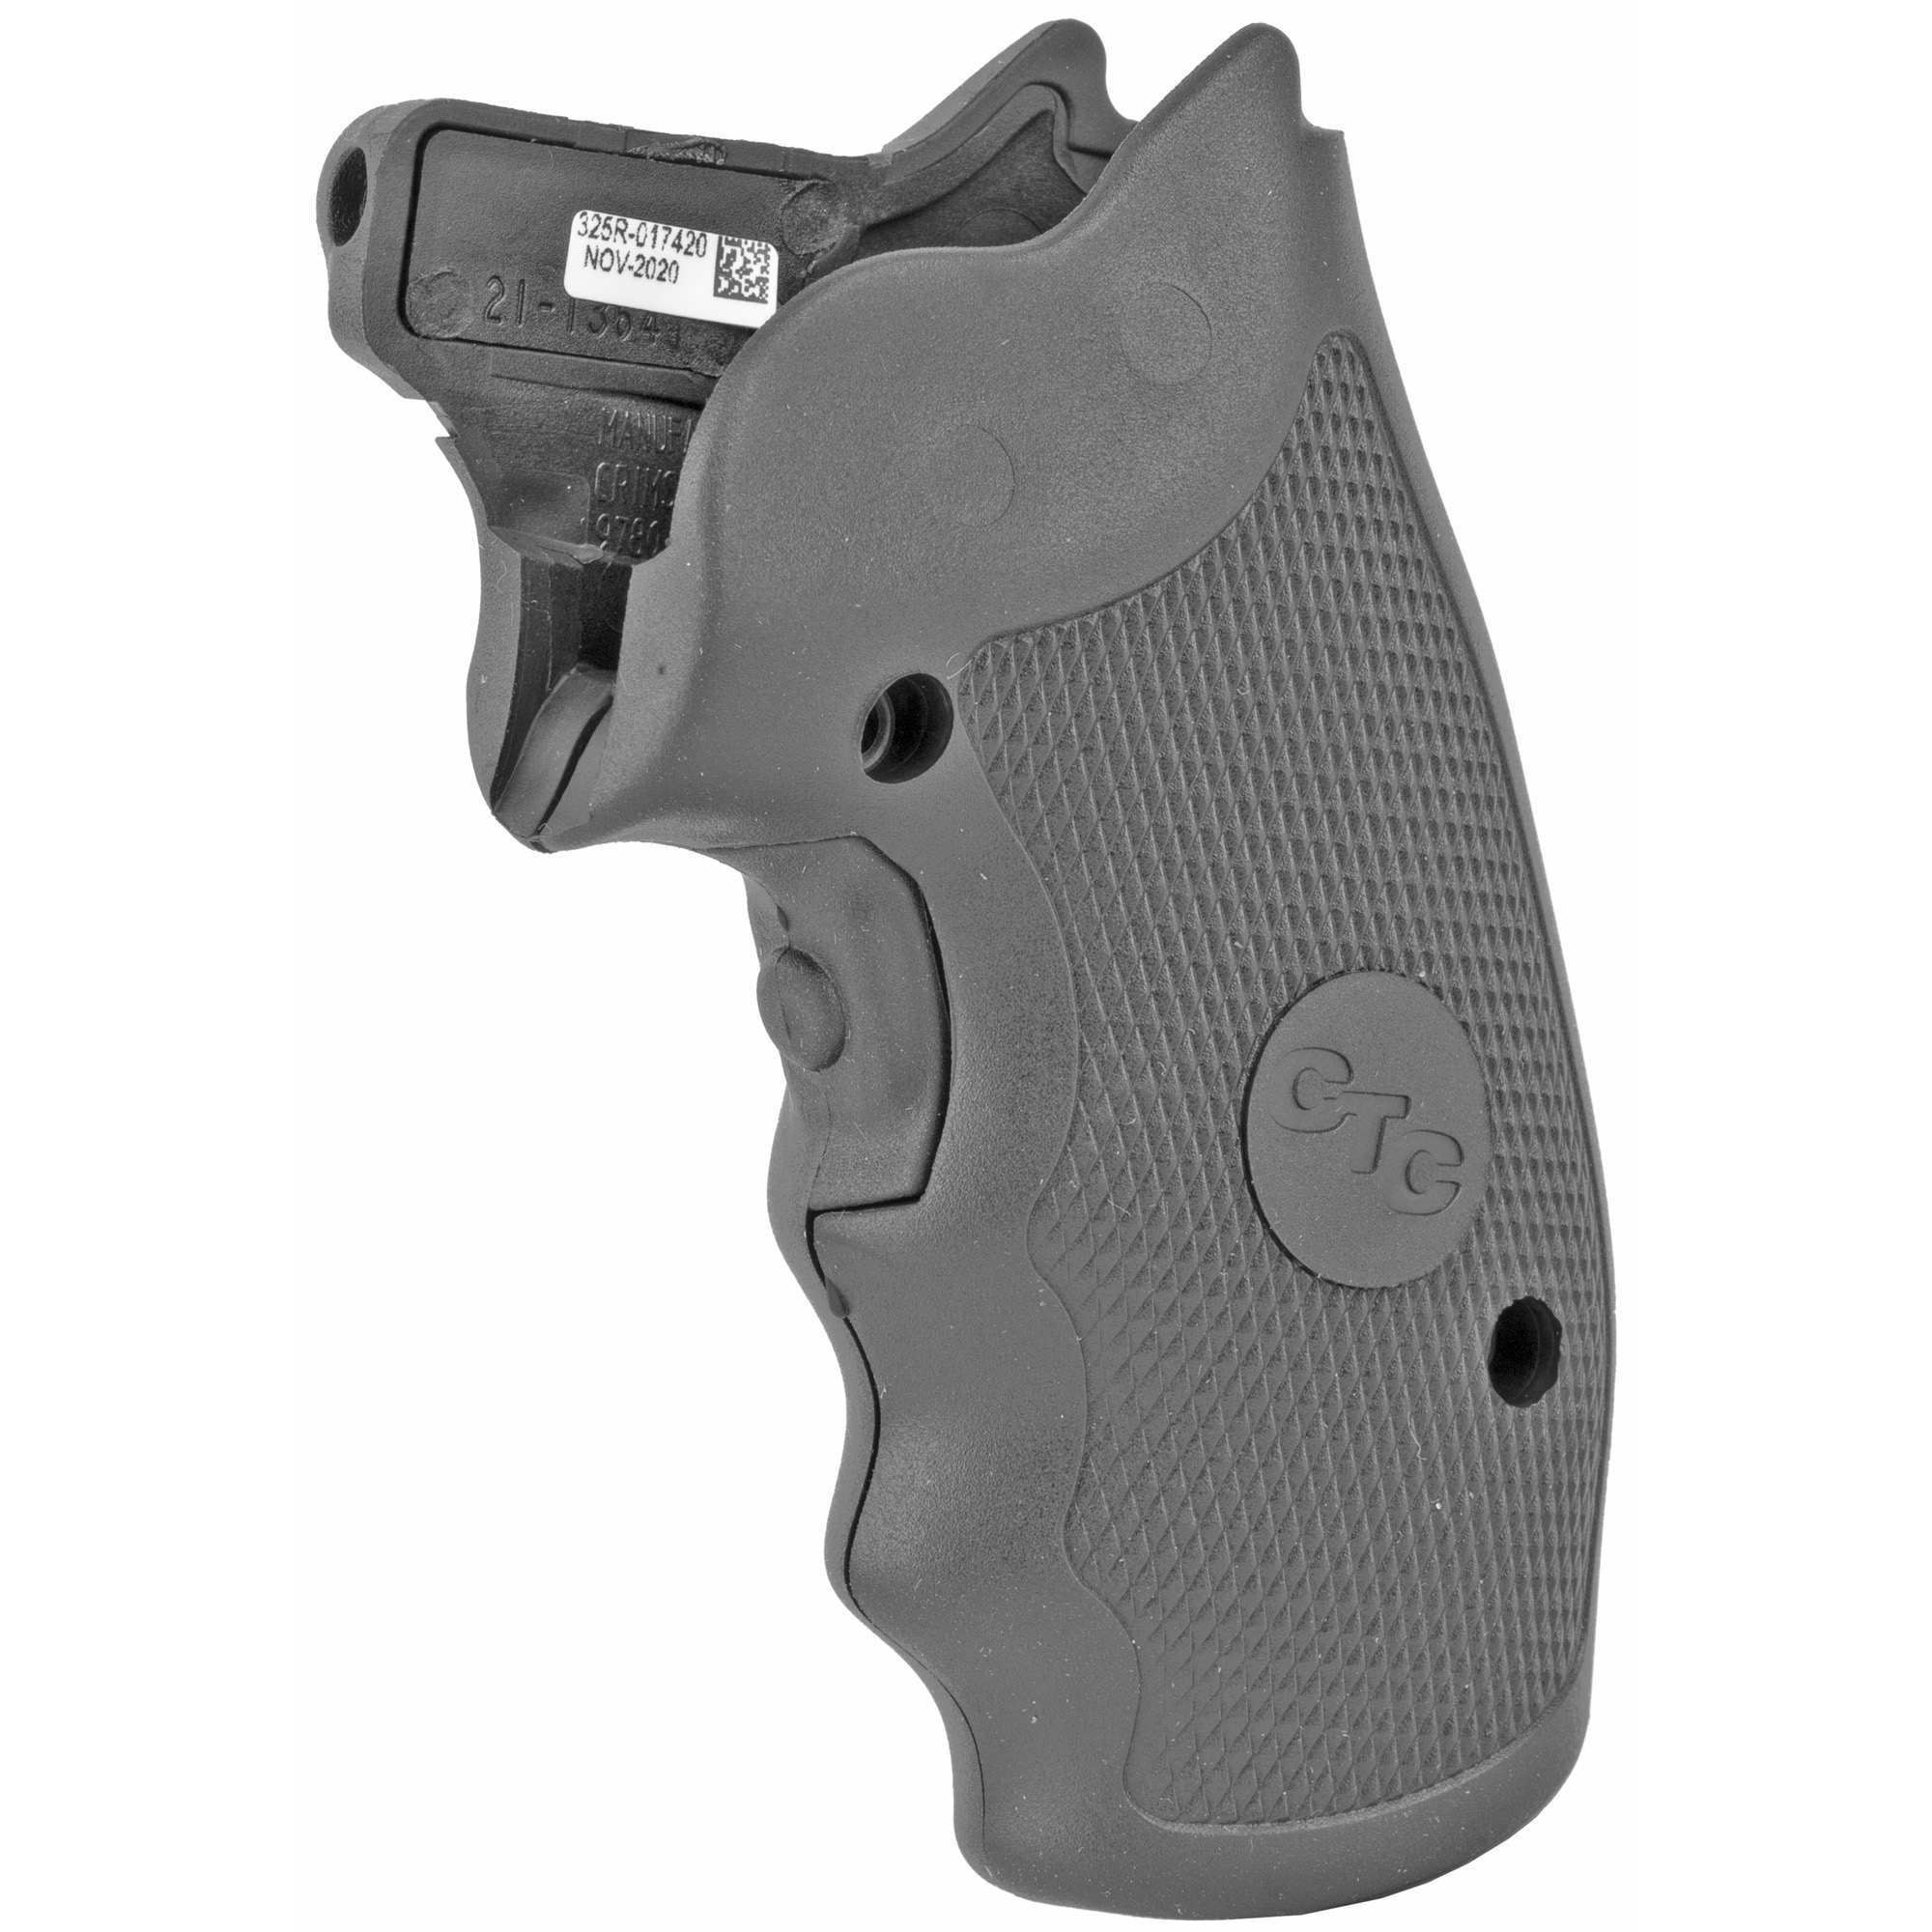 """LG-325 laser sights fit most large and small frame Charter Arms revolvers to date and feature our comfortable rubber-overmold material for better grip control. Lasergrips(R) instinctive front activation switch instantly projects the laser dot onto your target with a natural grip"""" providing you with an Immediate"""" Decisive"""" Advantage(TM)."""